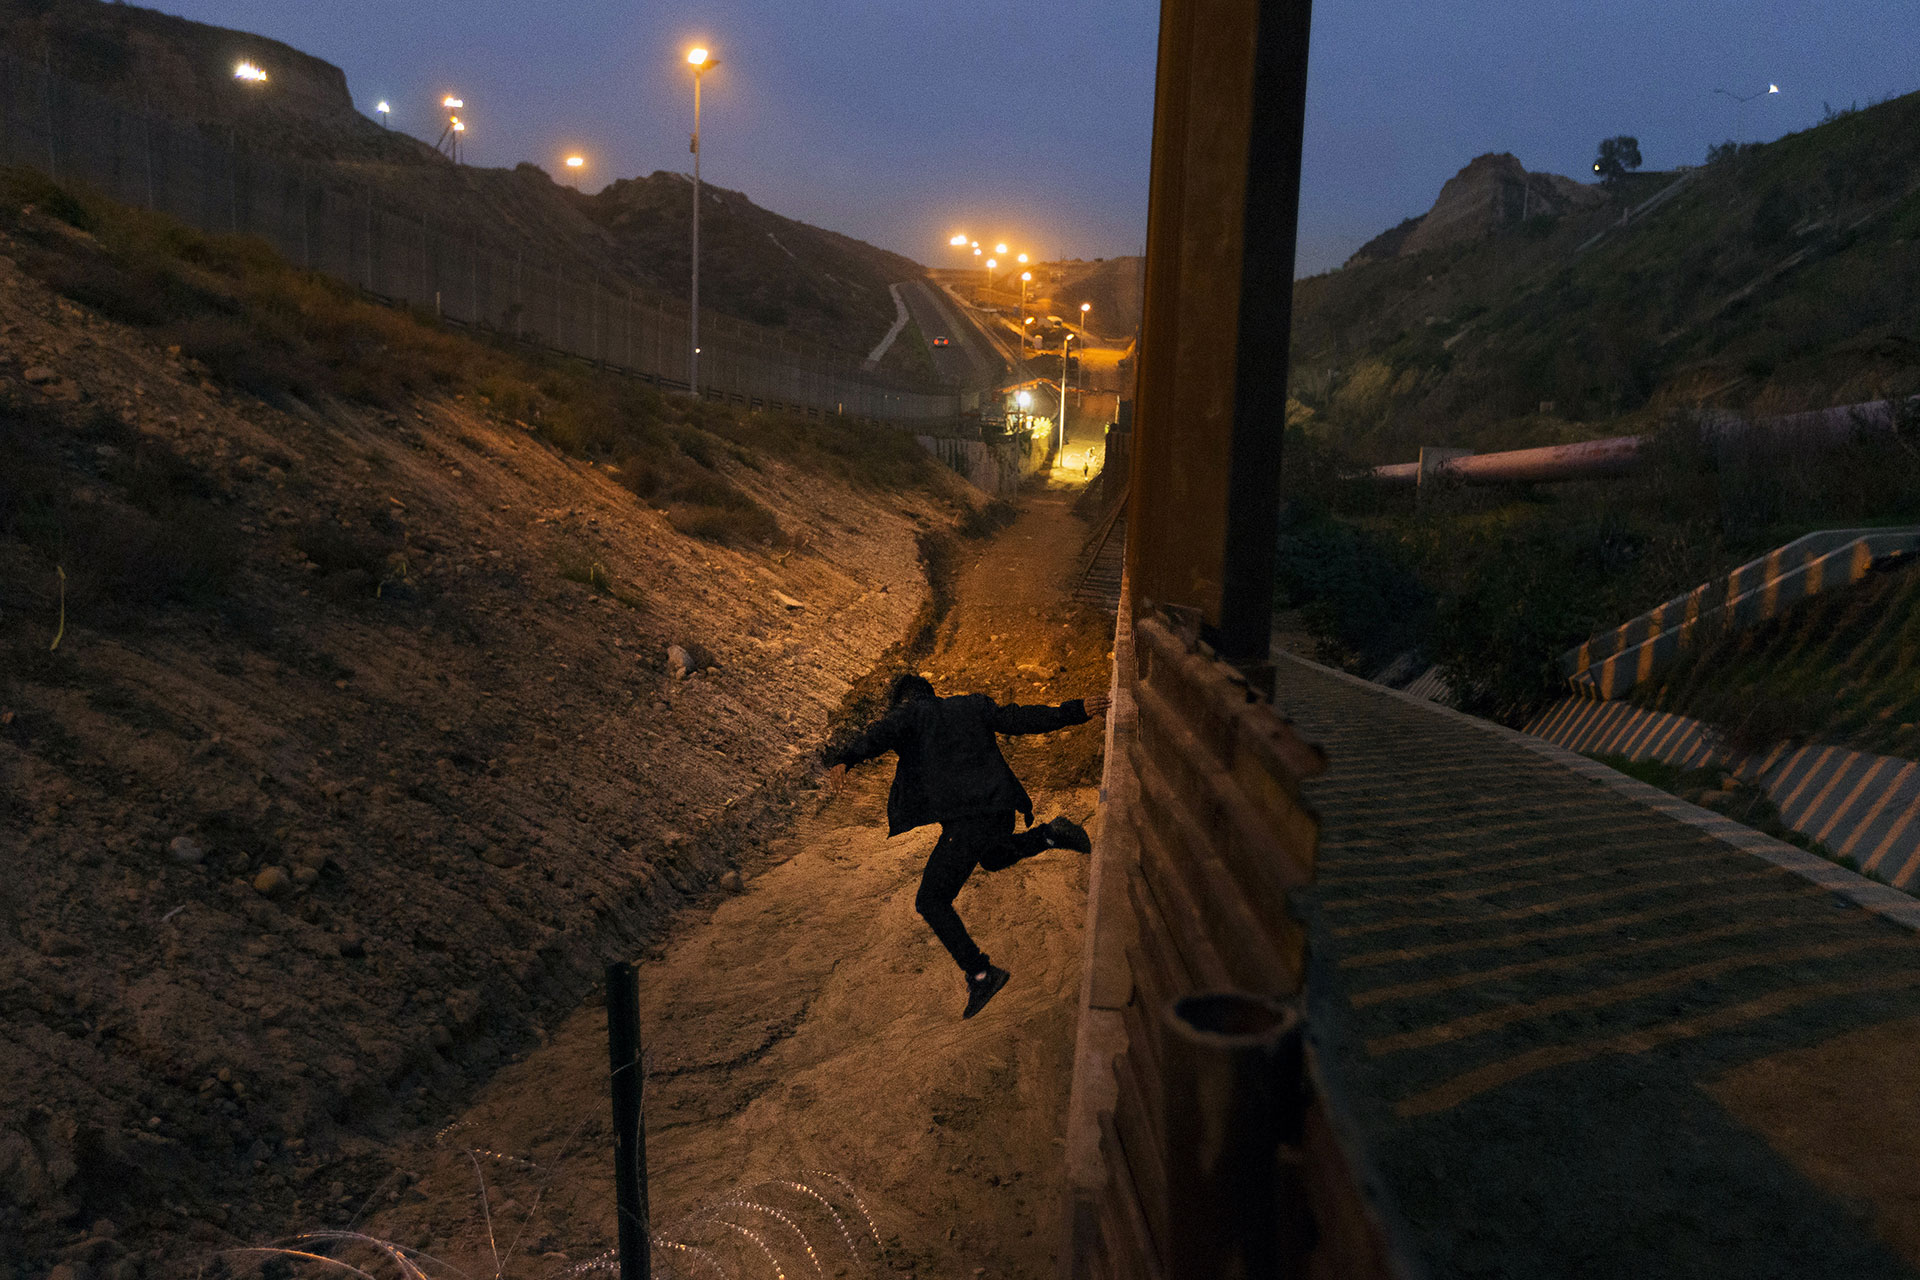 A Honduran migrant jumps from the U.S. border fence in Tijuana, Mexico on 21 December 2018.